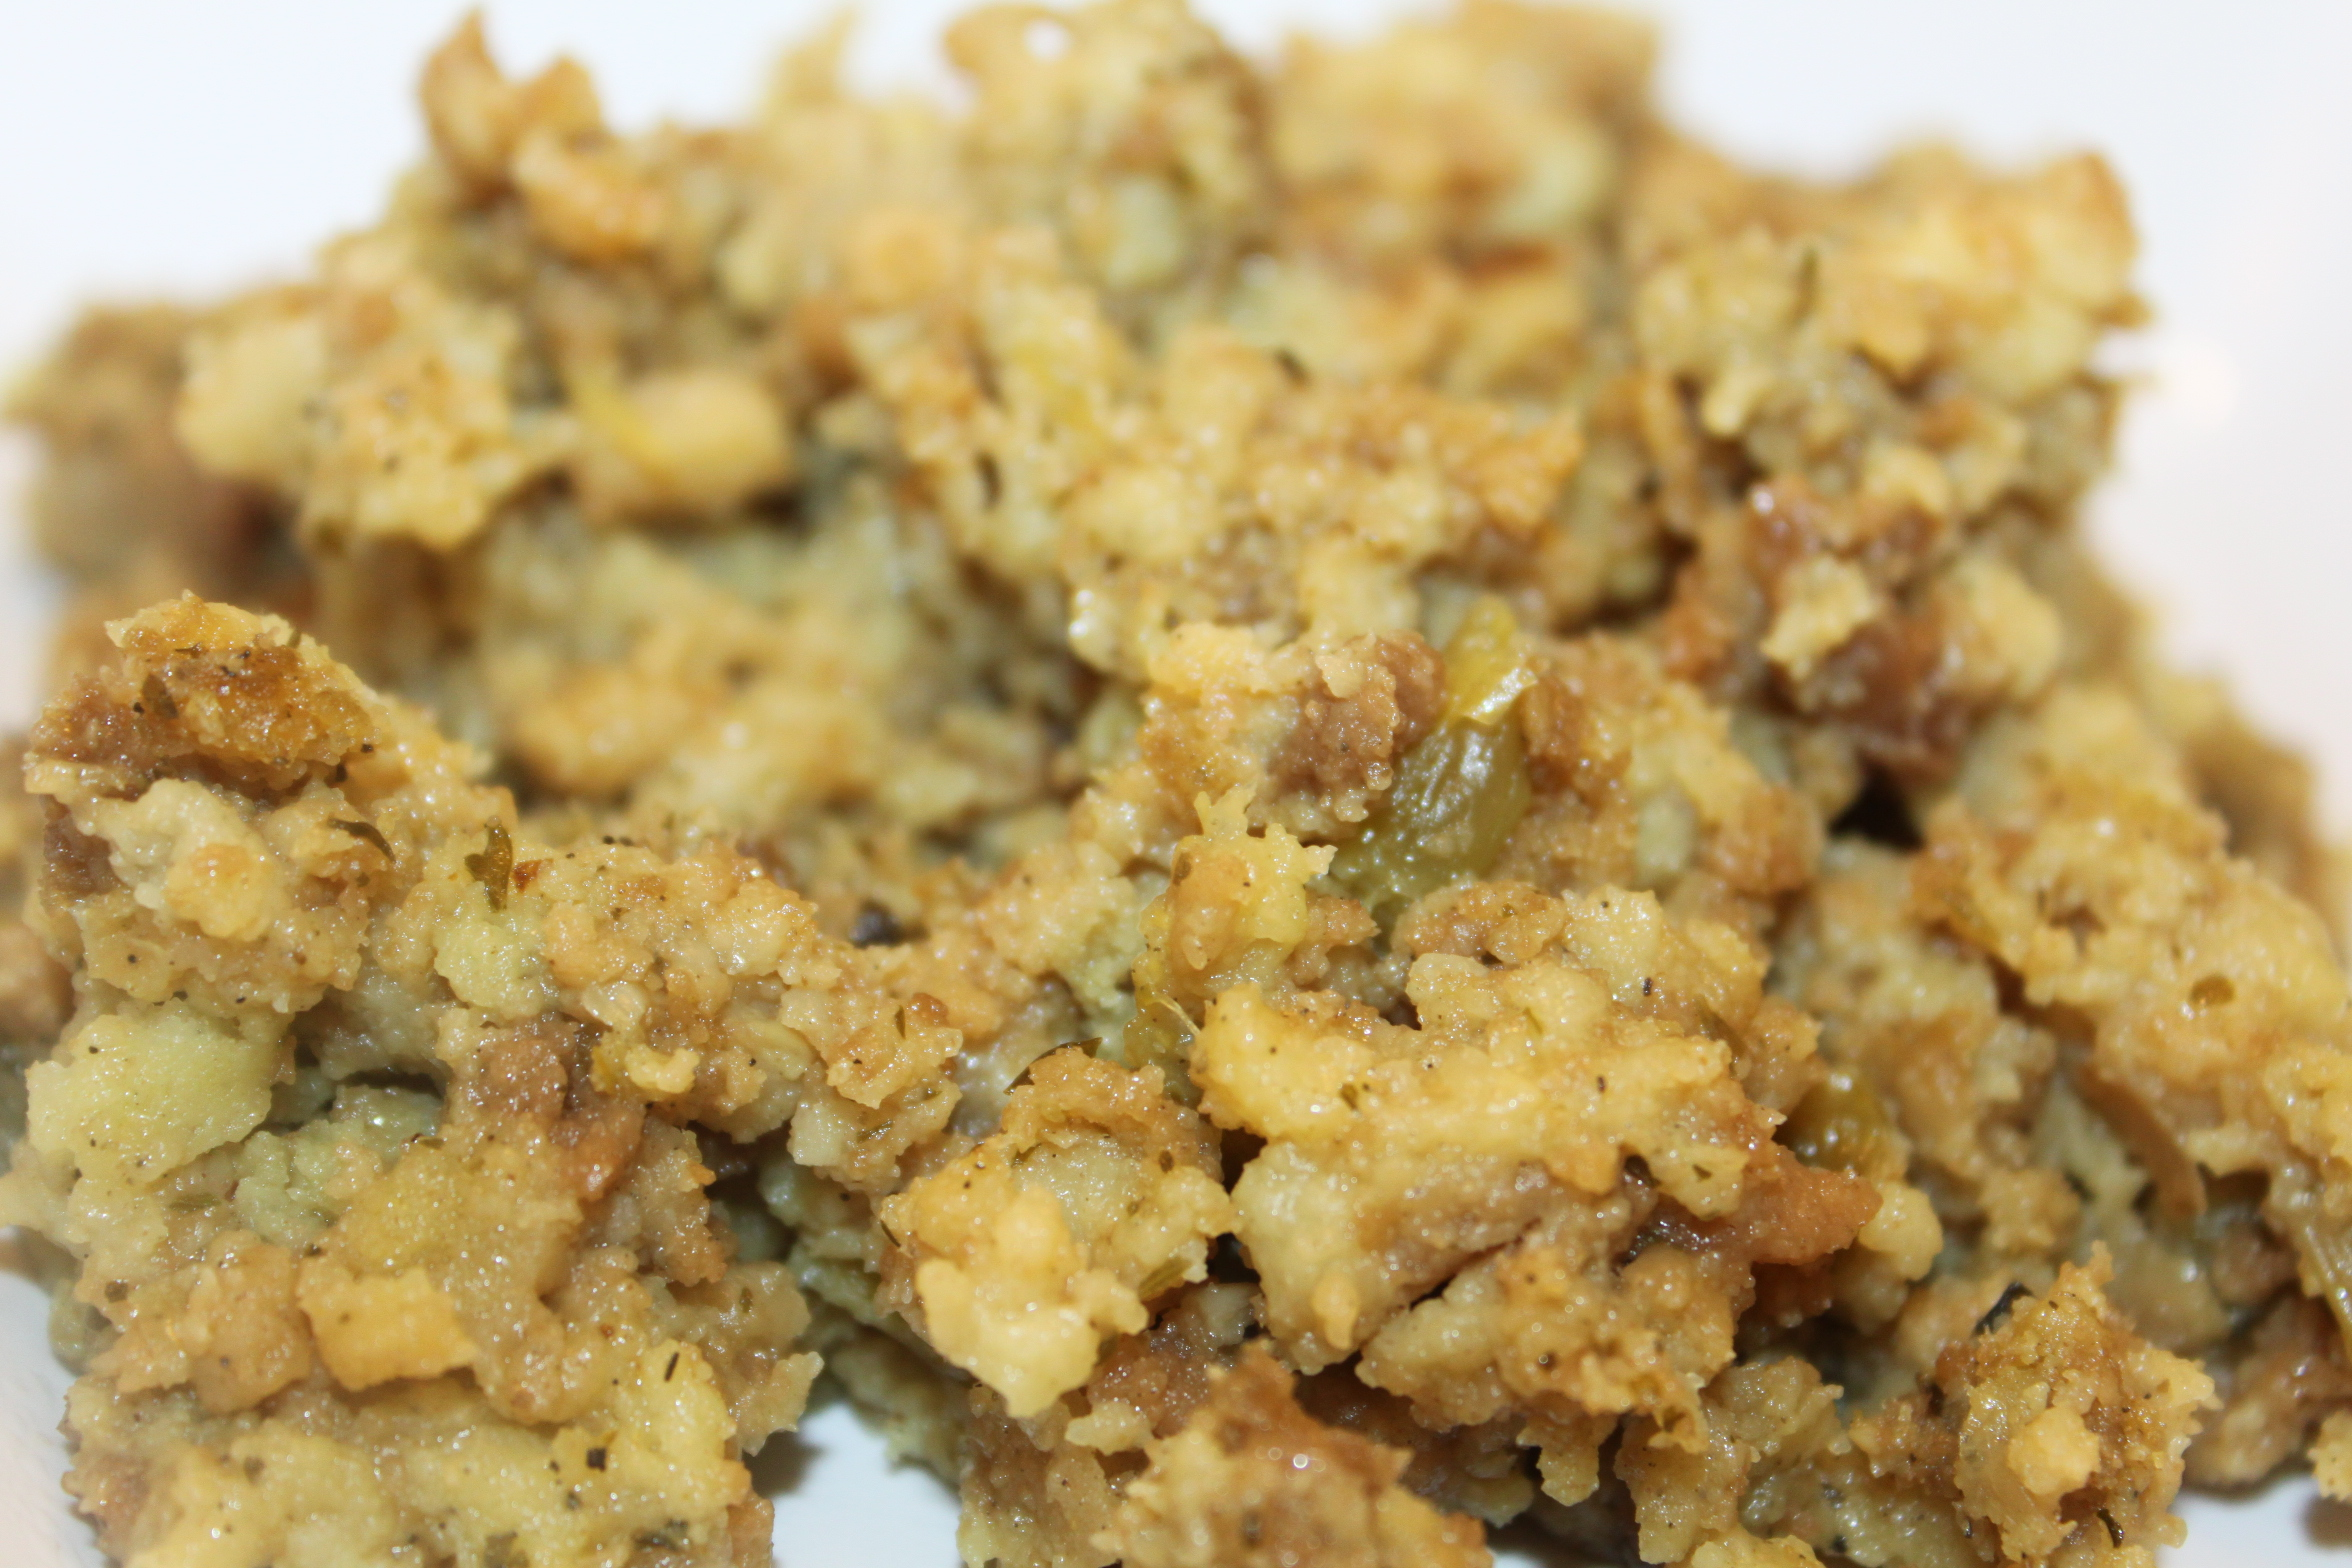 Classic Stuffing Recipe   Just The Way My Parents Made It  Making classic bread stuffing reminds me of my childhood Thanksgiving meals